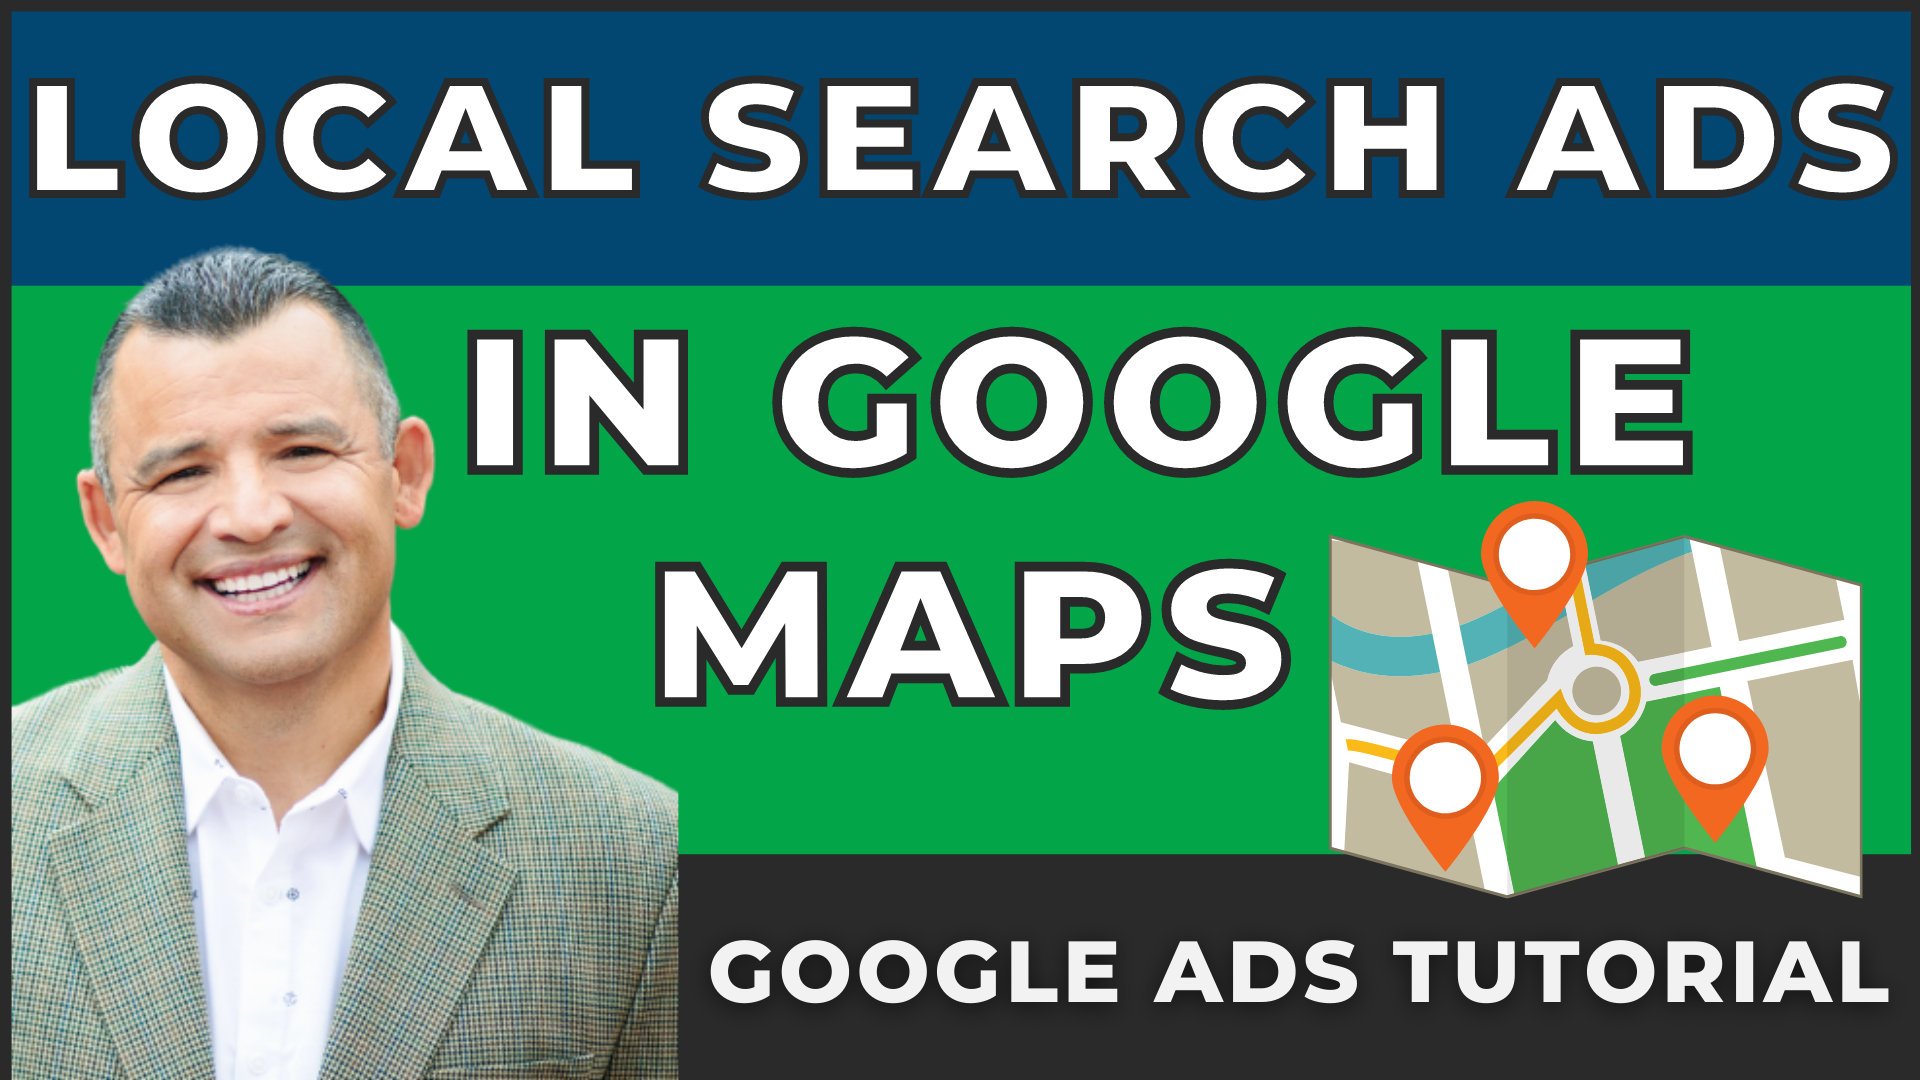 How To Get Local Search Ads To Show Up In Google Maps